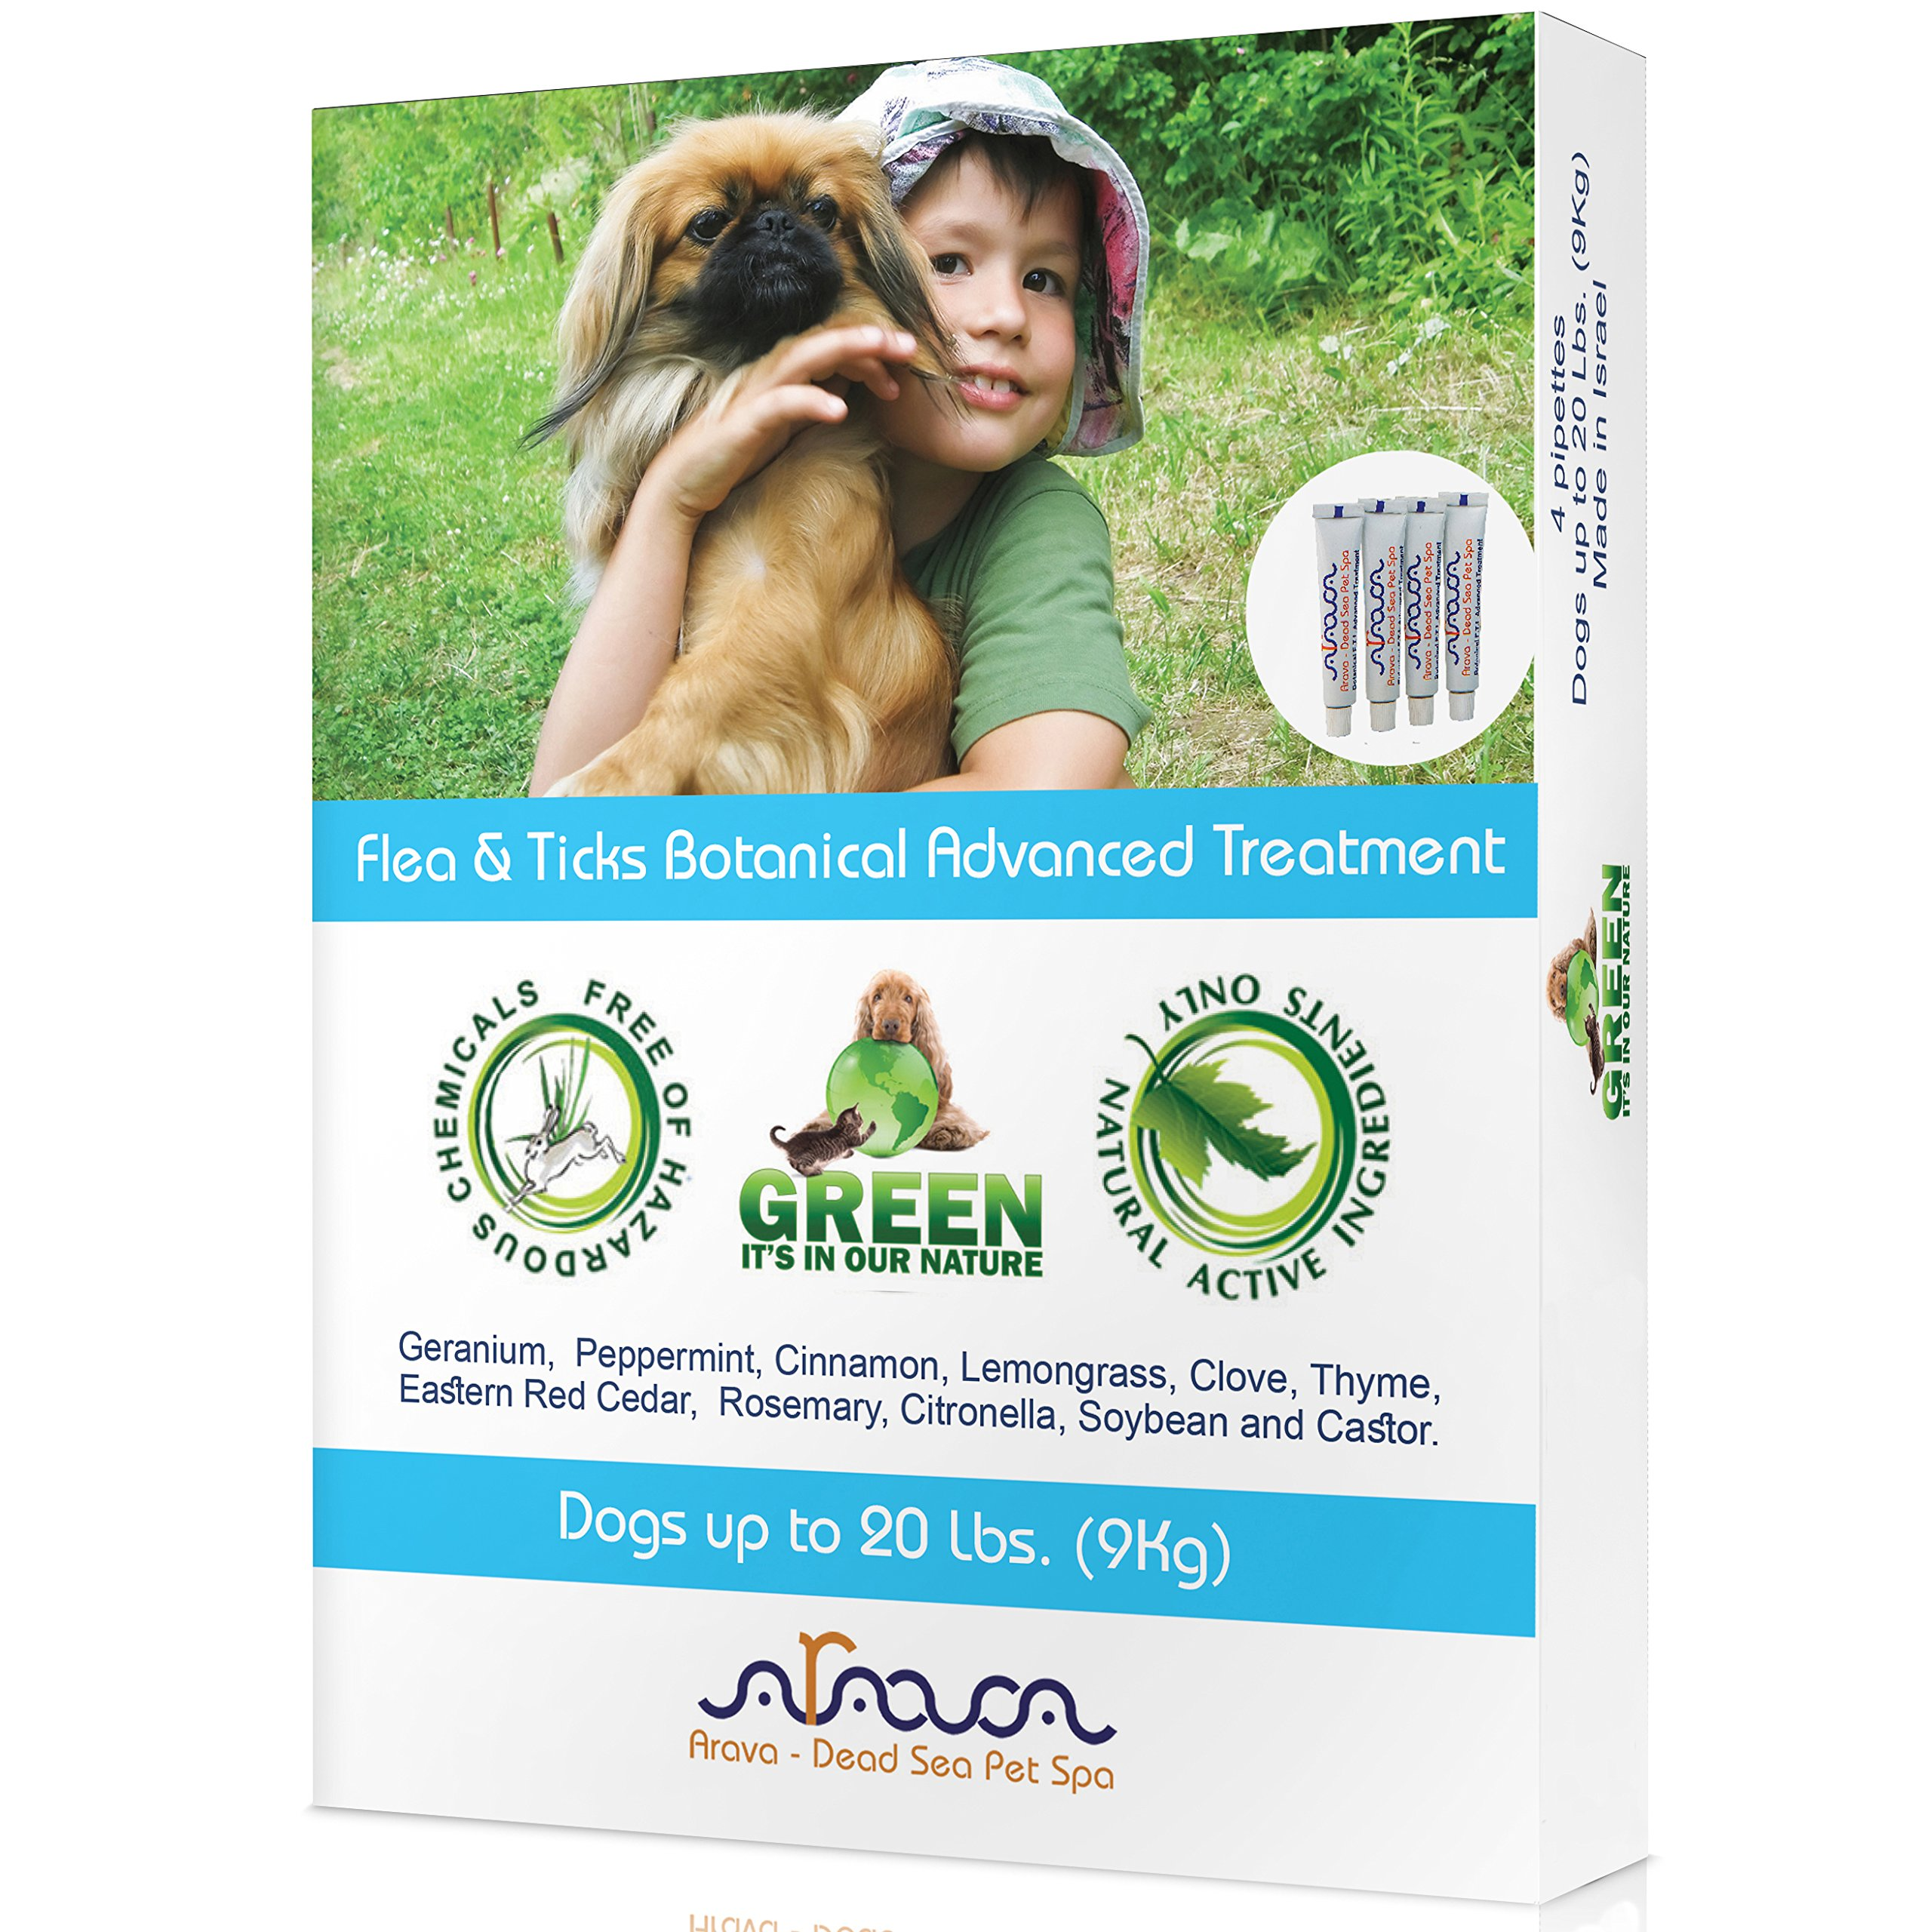 Arava Flea & Tick Control Drops - Treatment for Dogs - 4-Doses - Natural Aromatherapy Medicated - Repels Pests with Natural Oils - Safe on Skin and Coats - Enhanced Defense & Prevention (3 Variations)